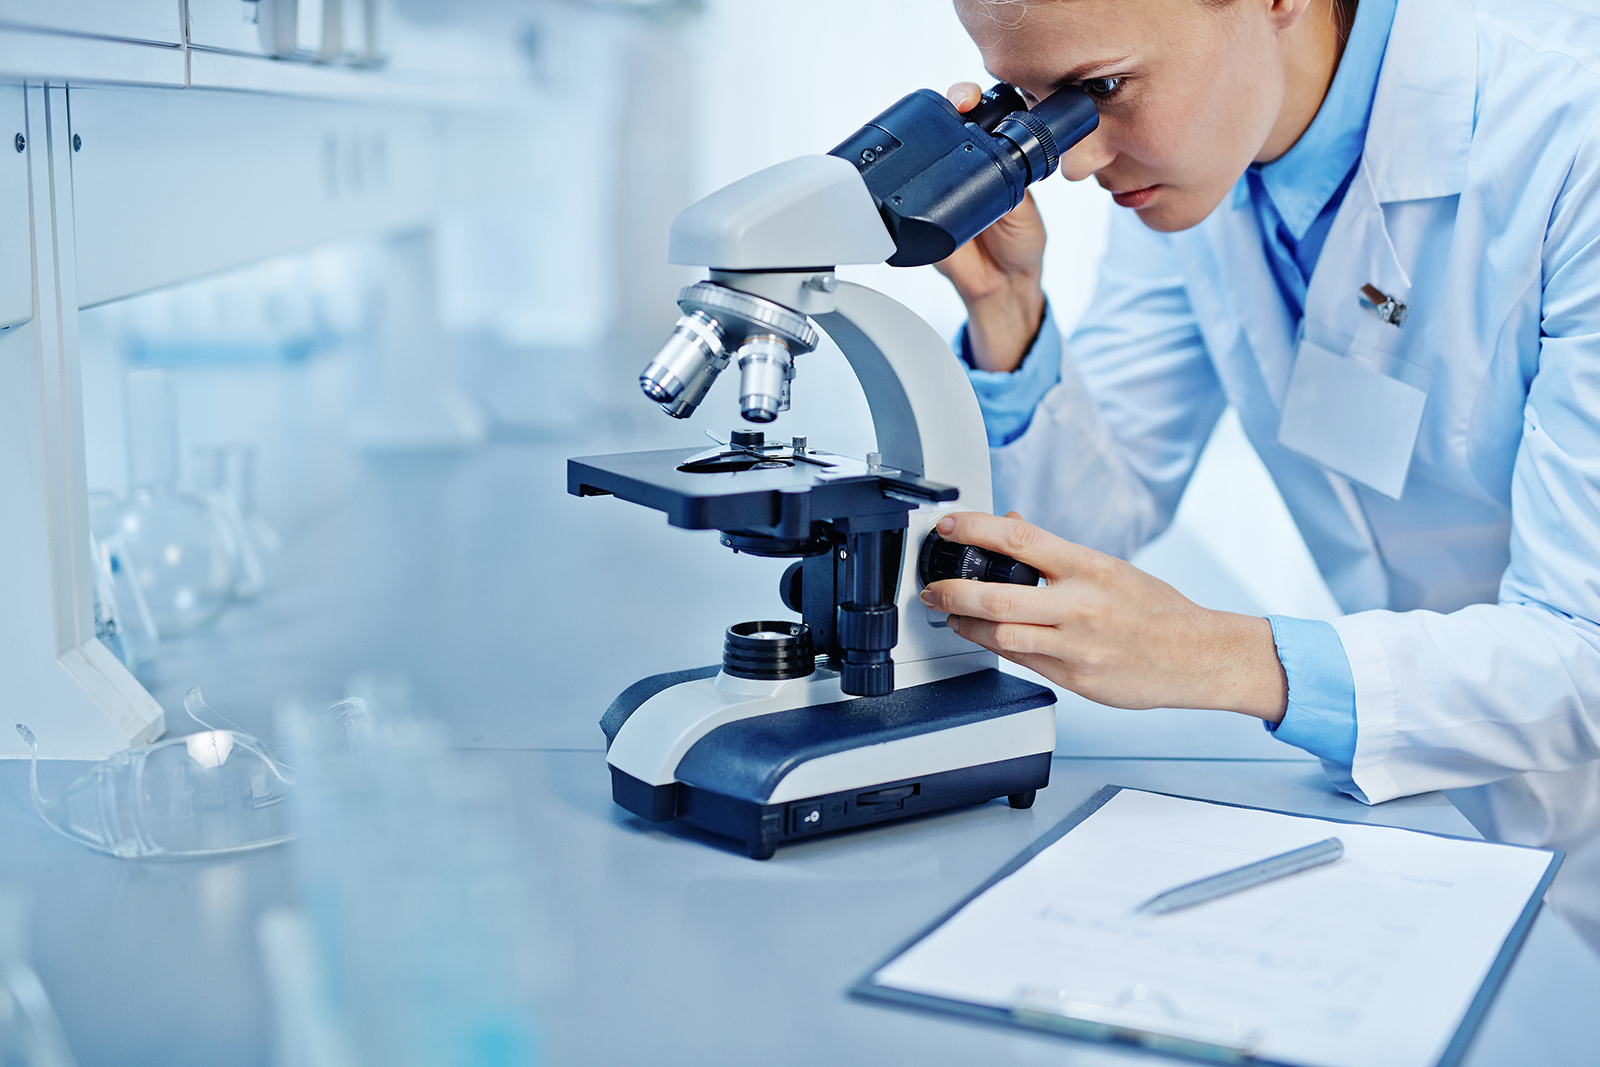 scientist in a lab using a microscope and looking at a slide